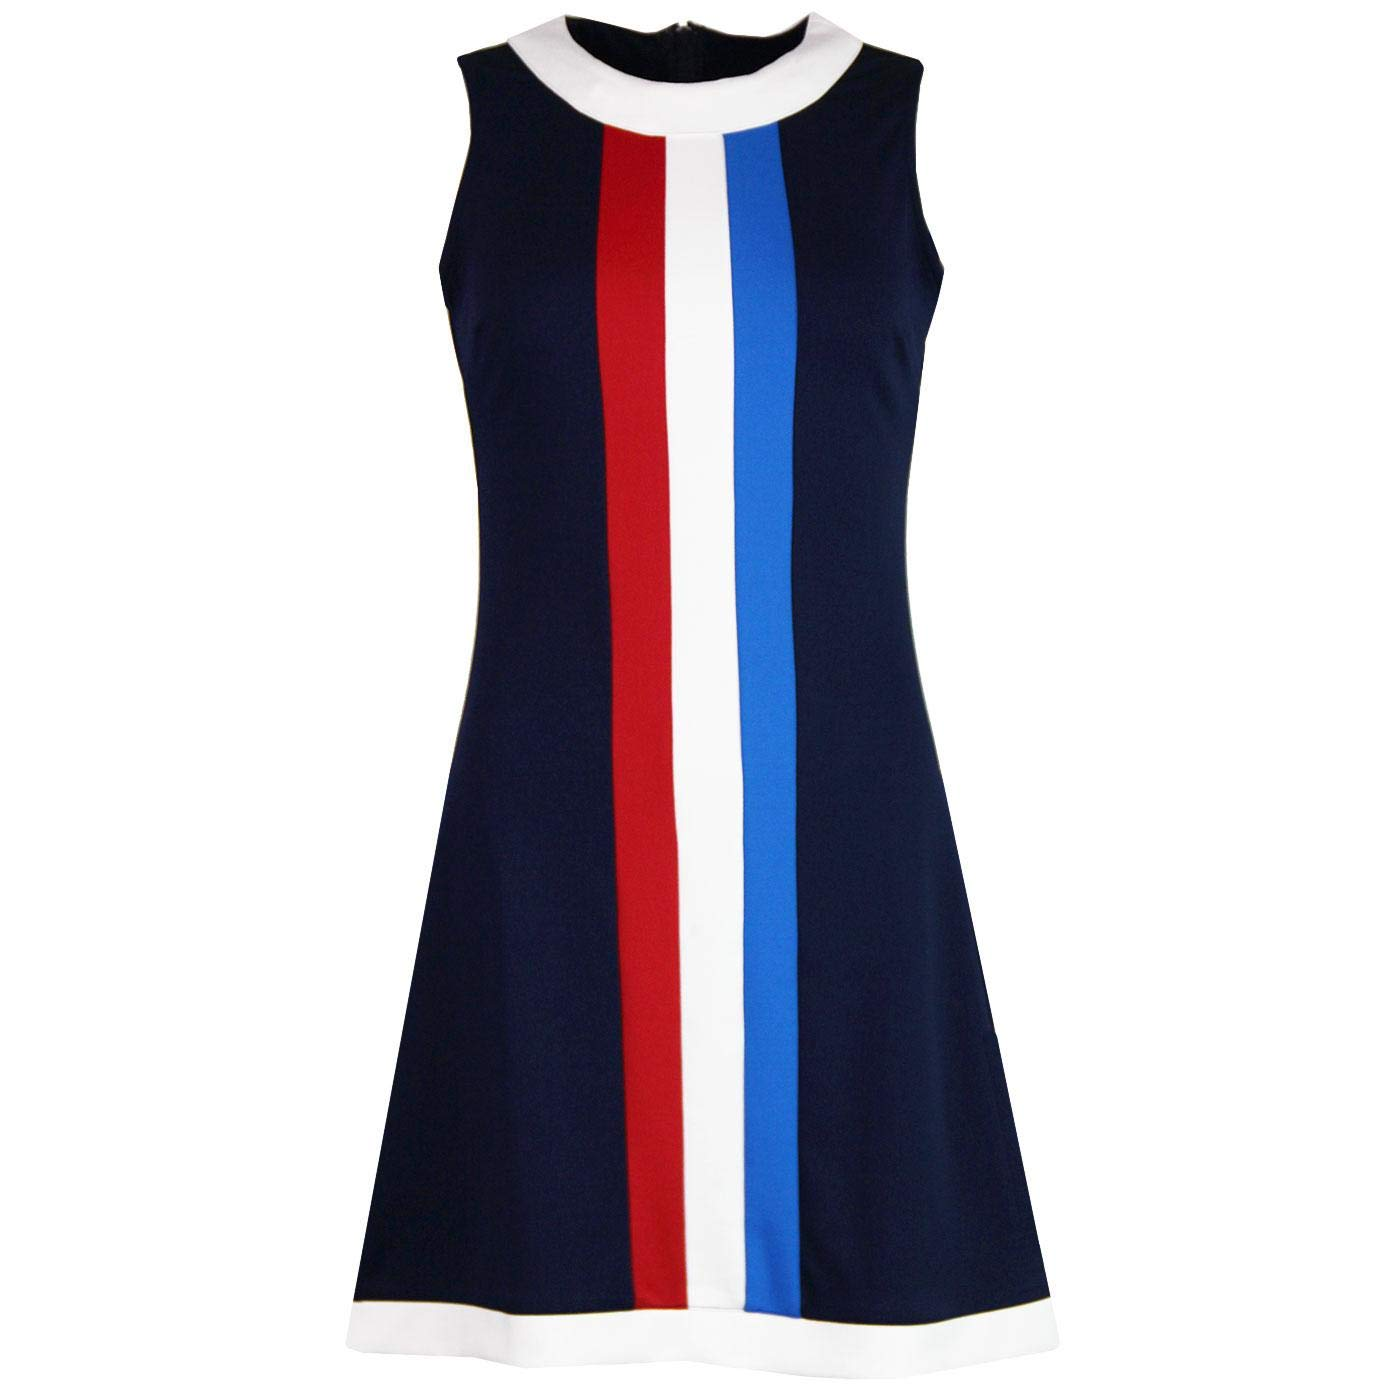 1960s Style Dresses, Clothing, Shoes UK Madcap England Polly Womens Retro 60s Mod Mini Jersey Dress with Stripe Front £39.99 AT vintagedancer.com